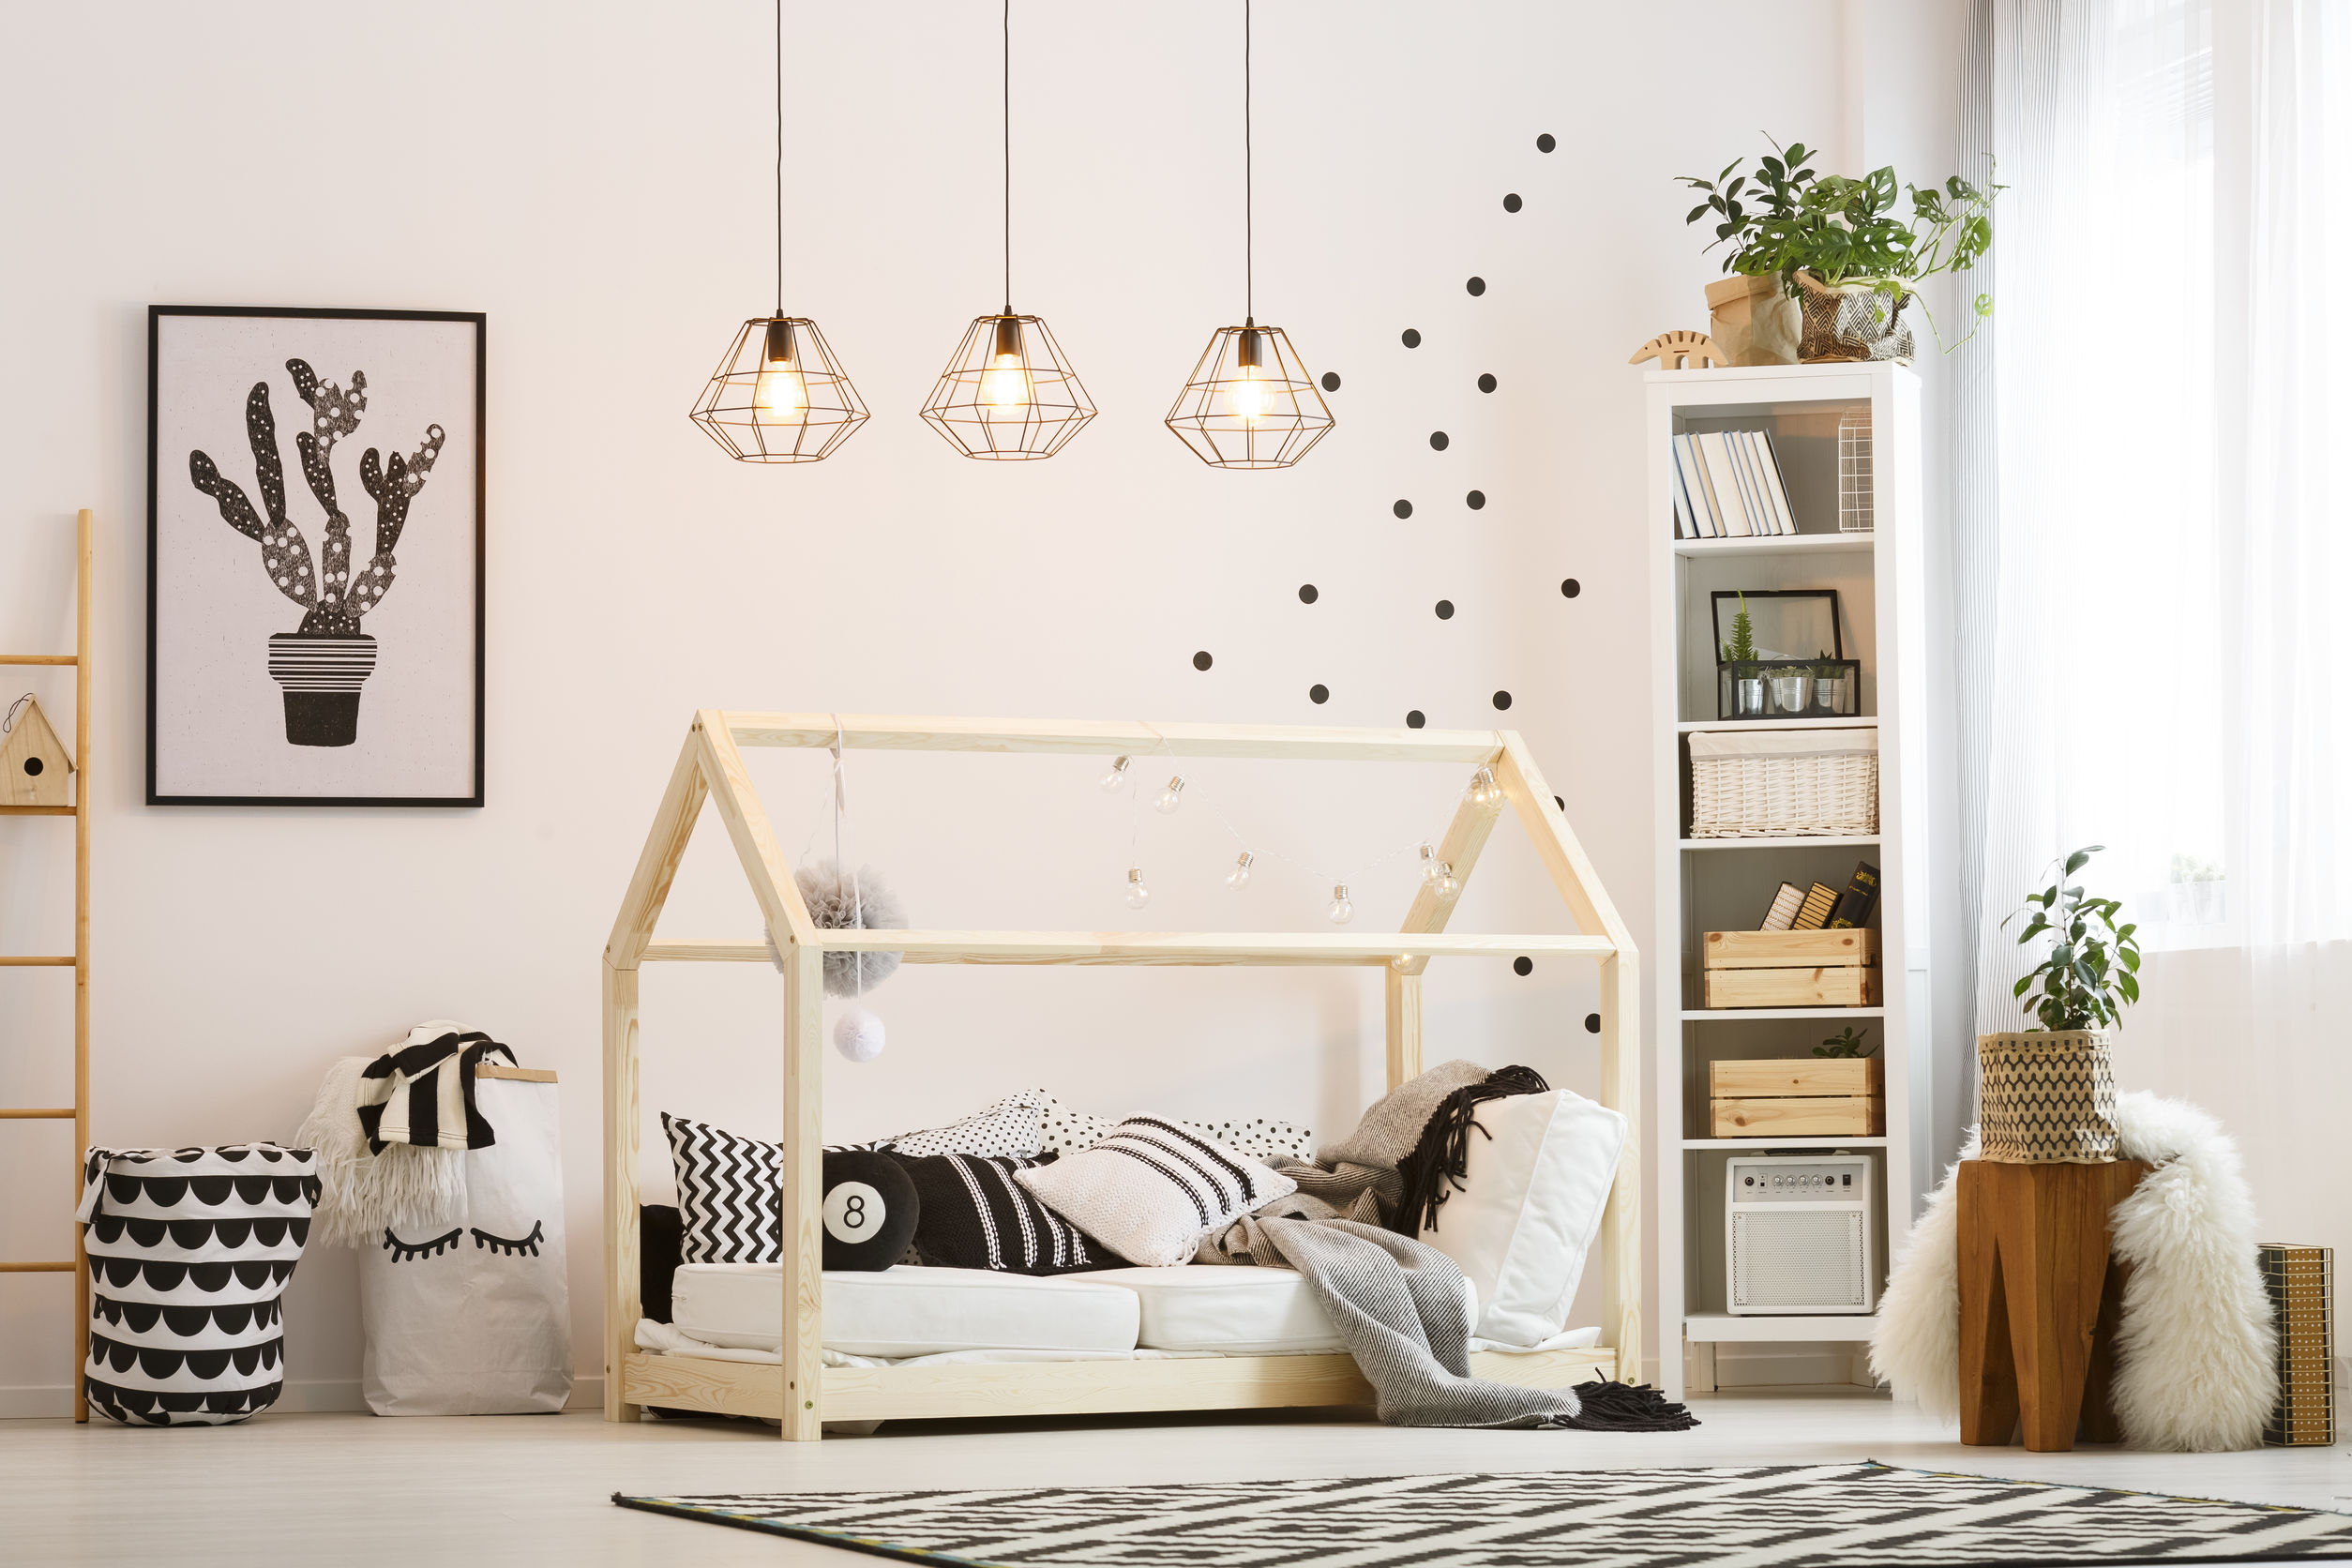 Best Montessori Bed 2021 Shopping Guide Review Thegoodestate